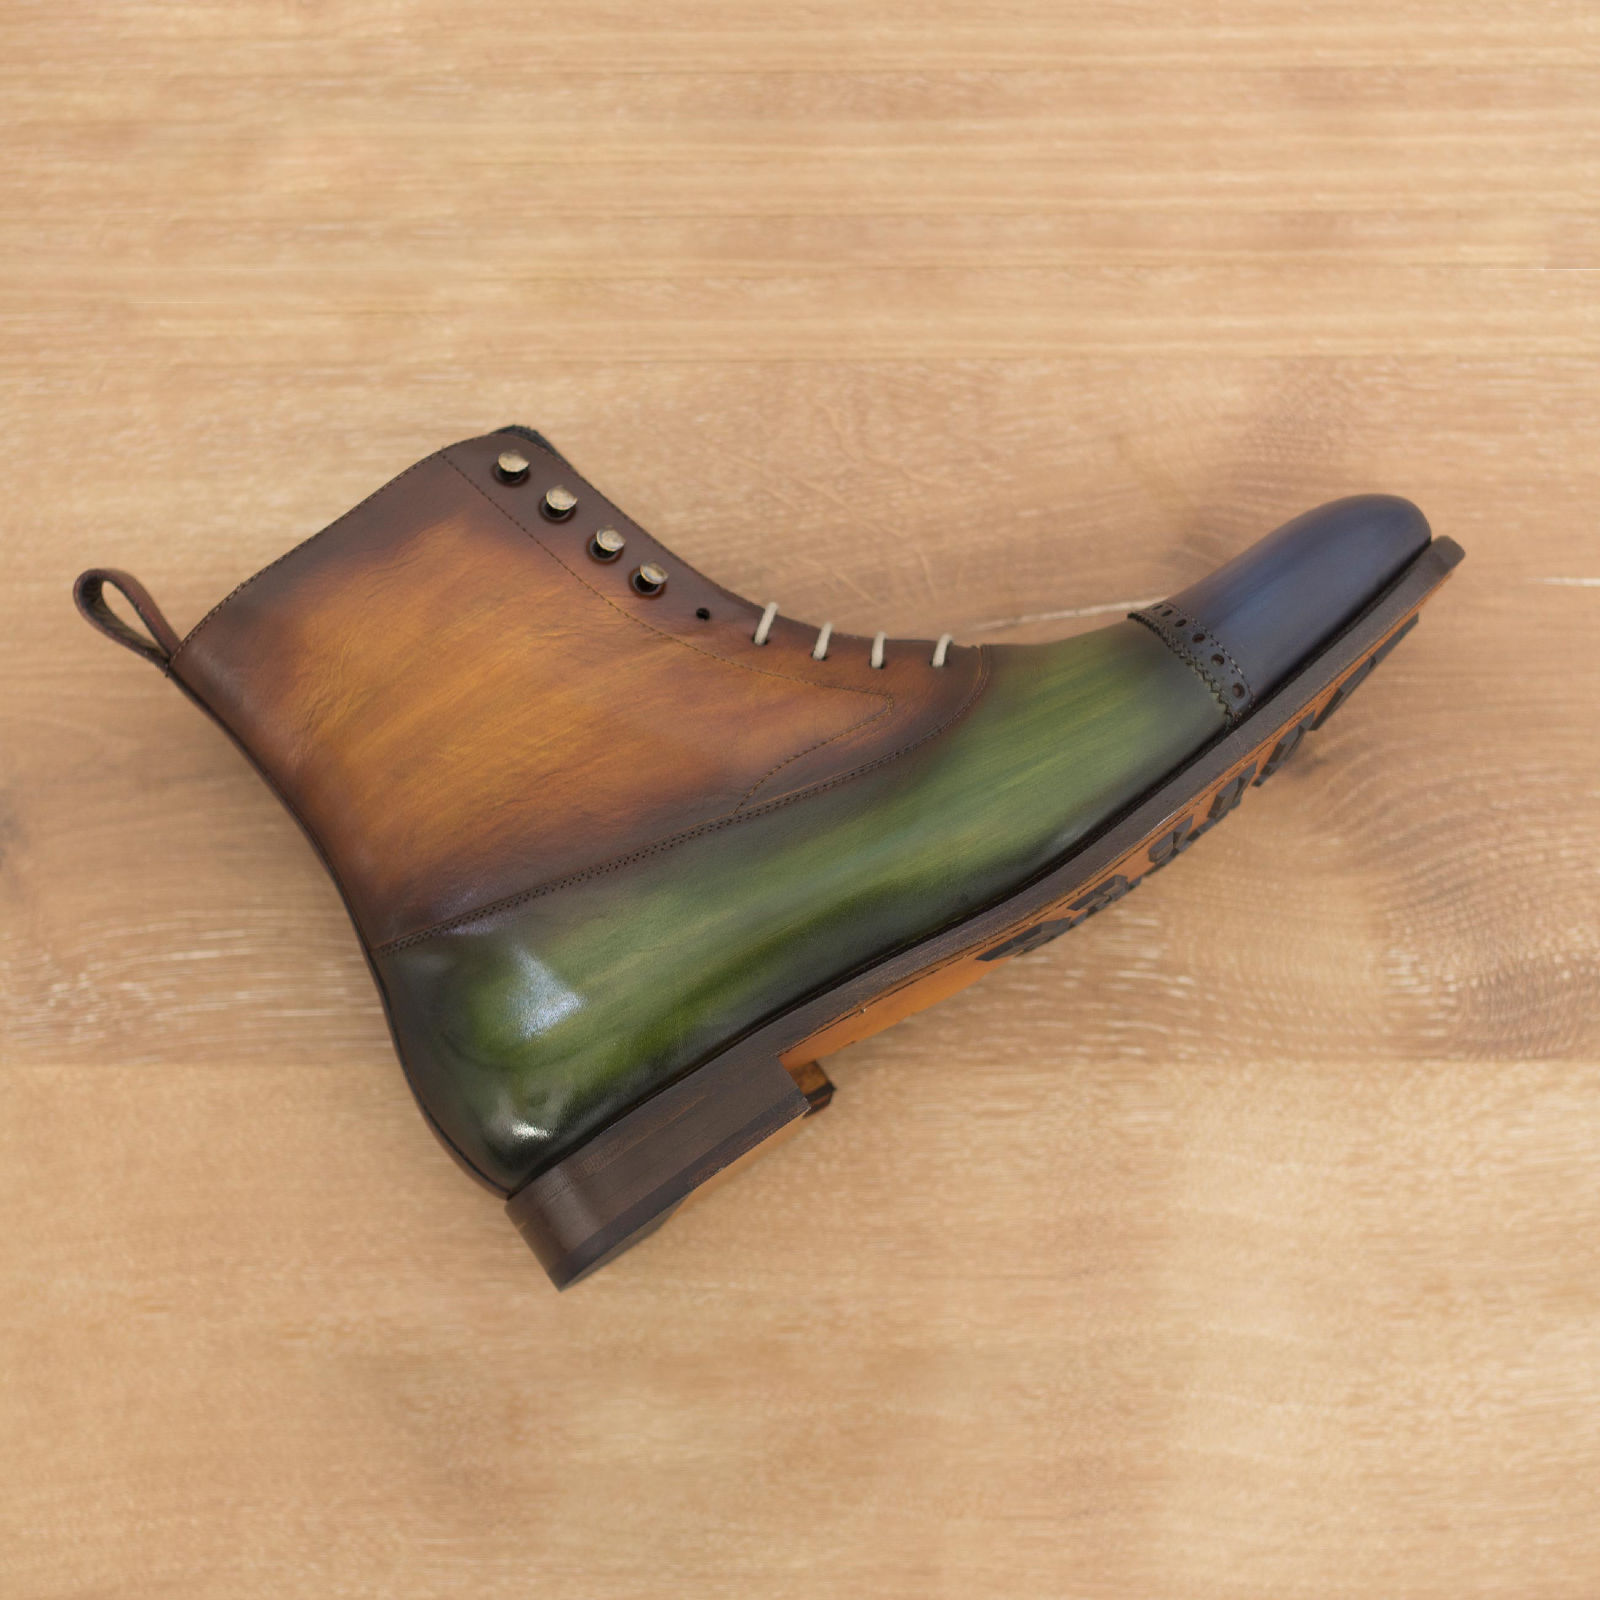 Balmoral boot burgundy crust patina + denim crust patina + cognac crust patina + khaki crust patina : 370€